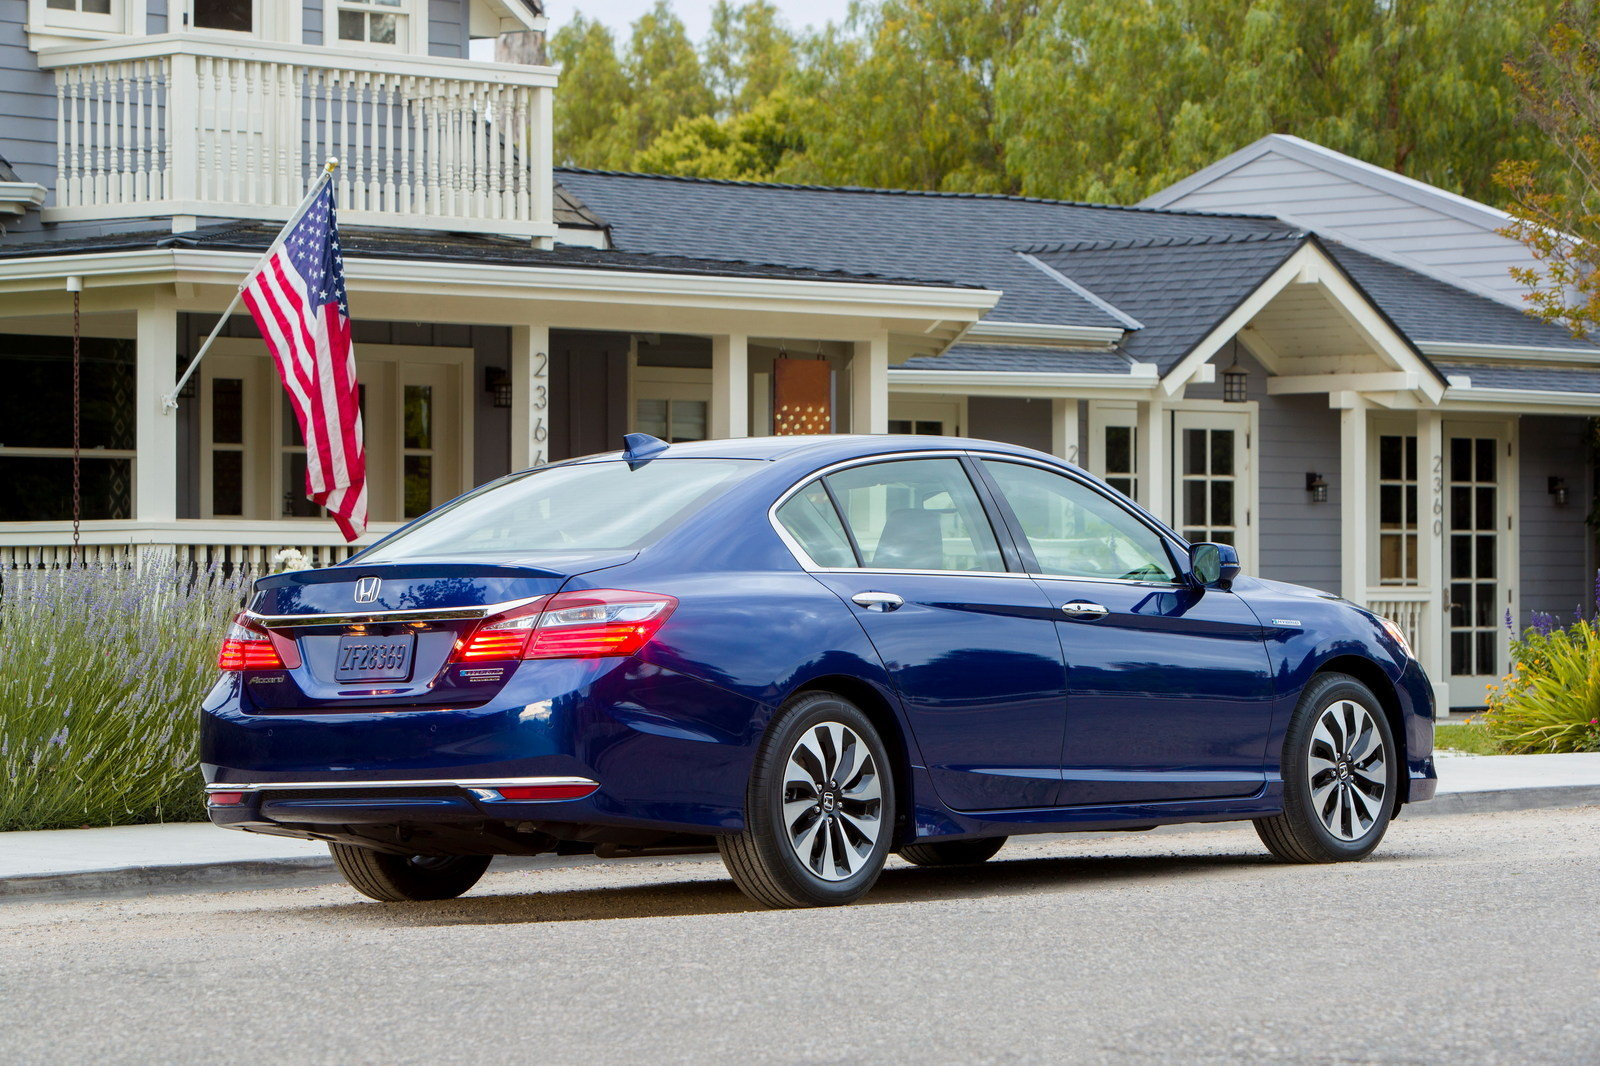 2017 honda accord hybrid review 2017 2018 best cars for 2017 honda accord prices paid